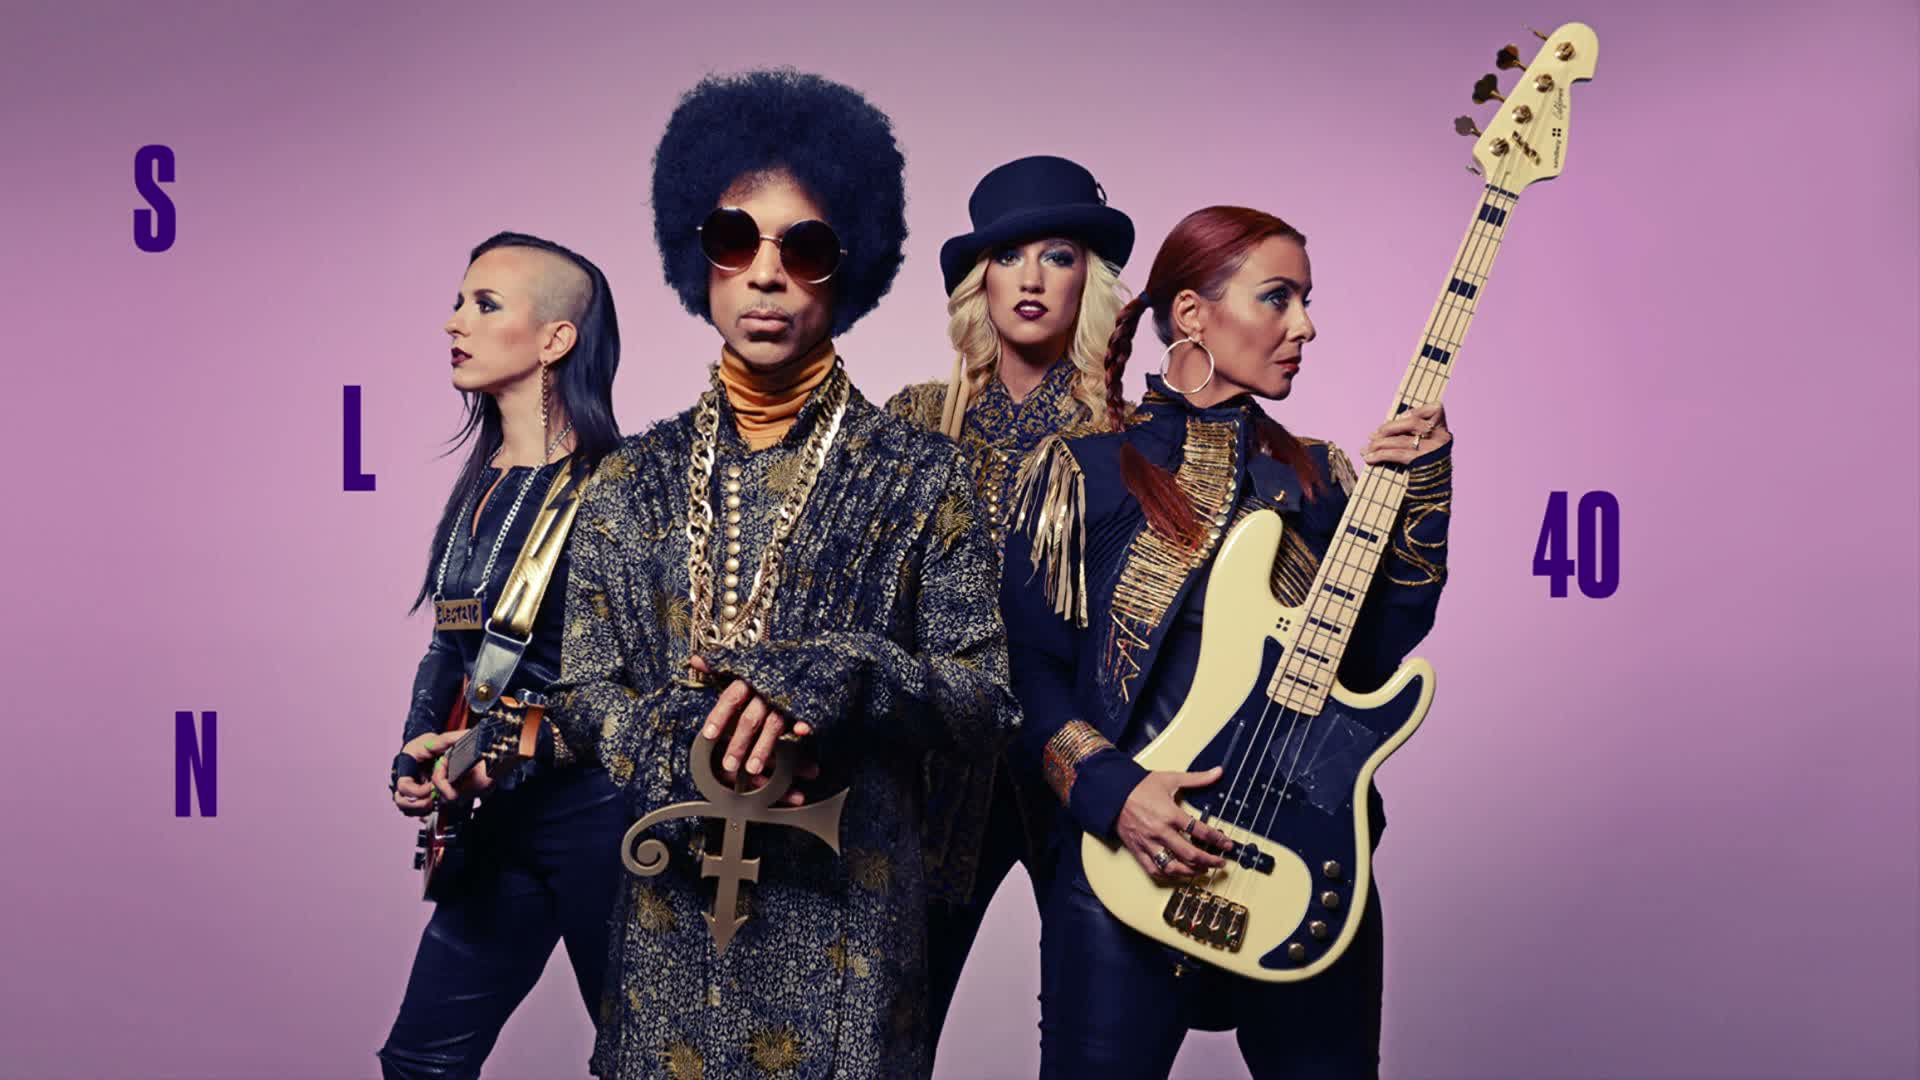 Snl Features Emotional Prince Episode Ratings Surge Mxdwn